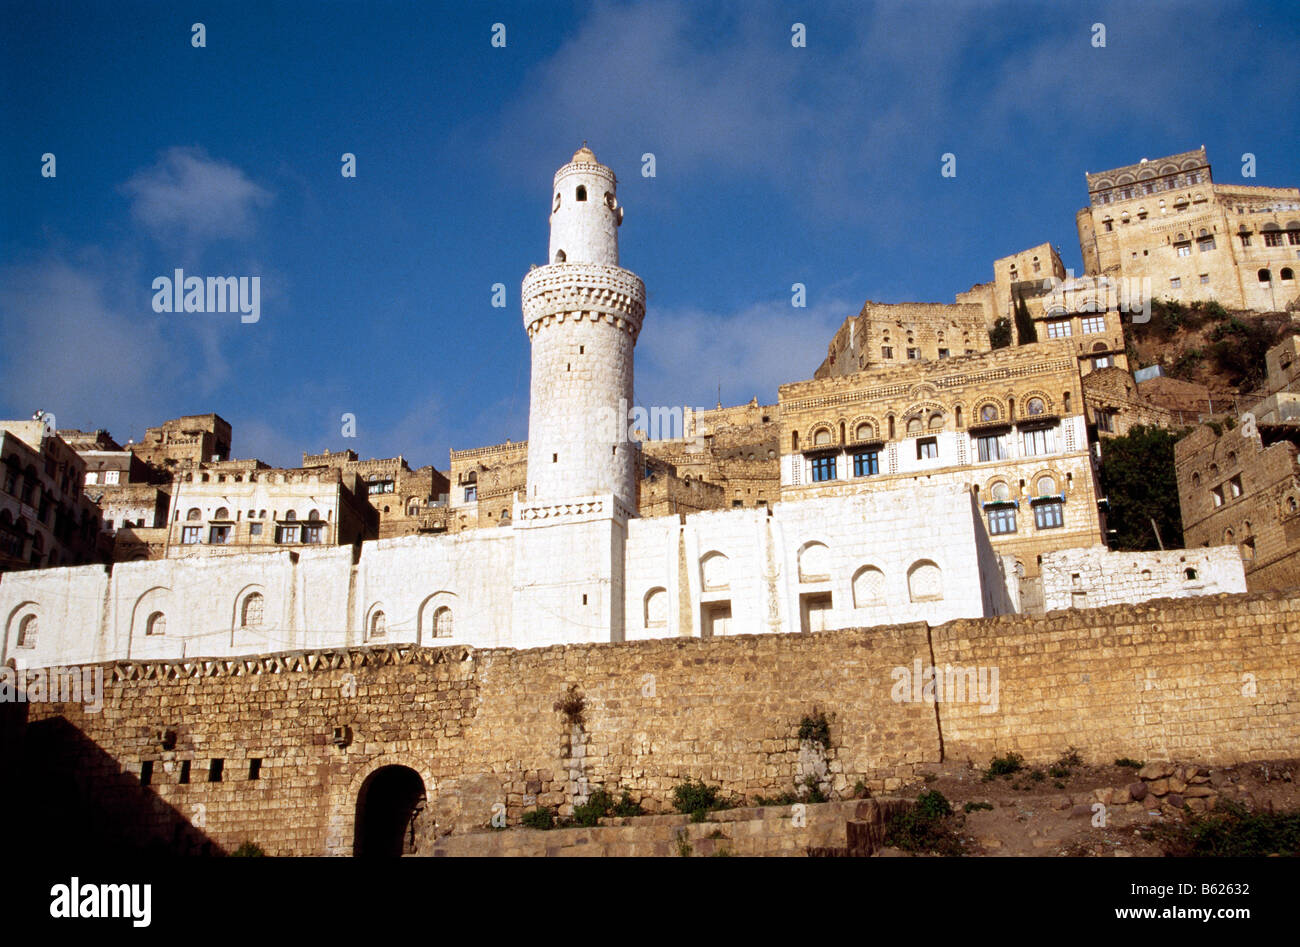 Mosque, Al Mahwit, Jauf, Yemen, Middle East - Stock Image